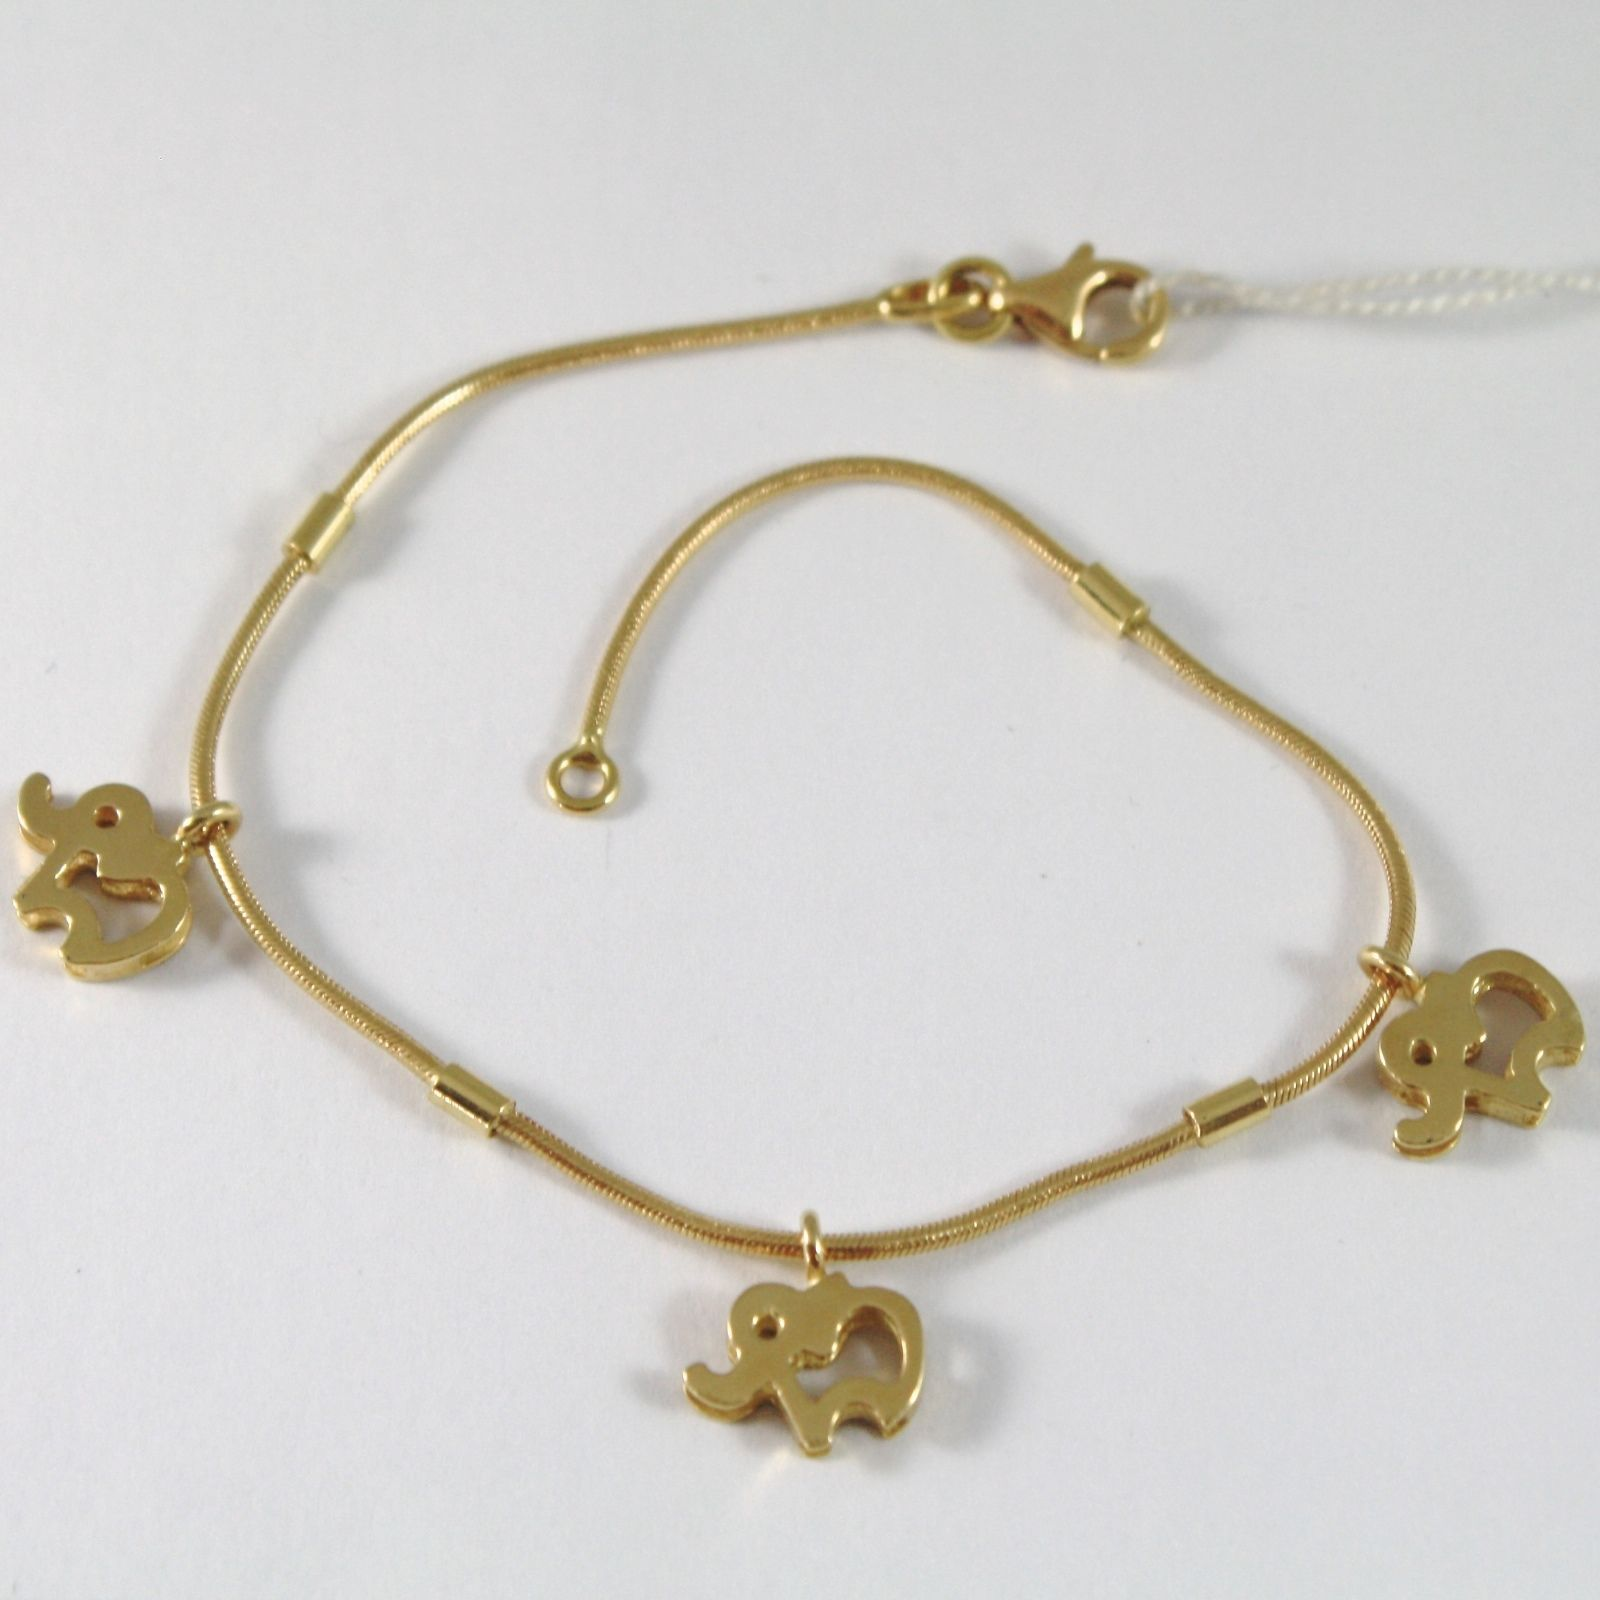 BRACELET YELLOW GOLD 750 18K WITH ELEPHANTS HANGING GOOD LUCK CHARM LONG 19 CM